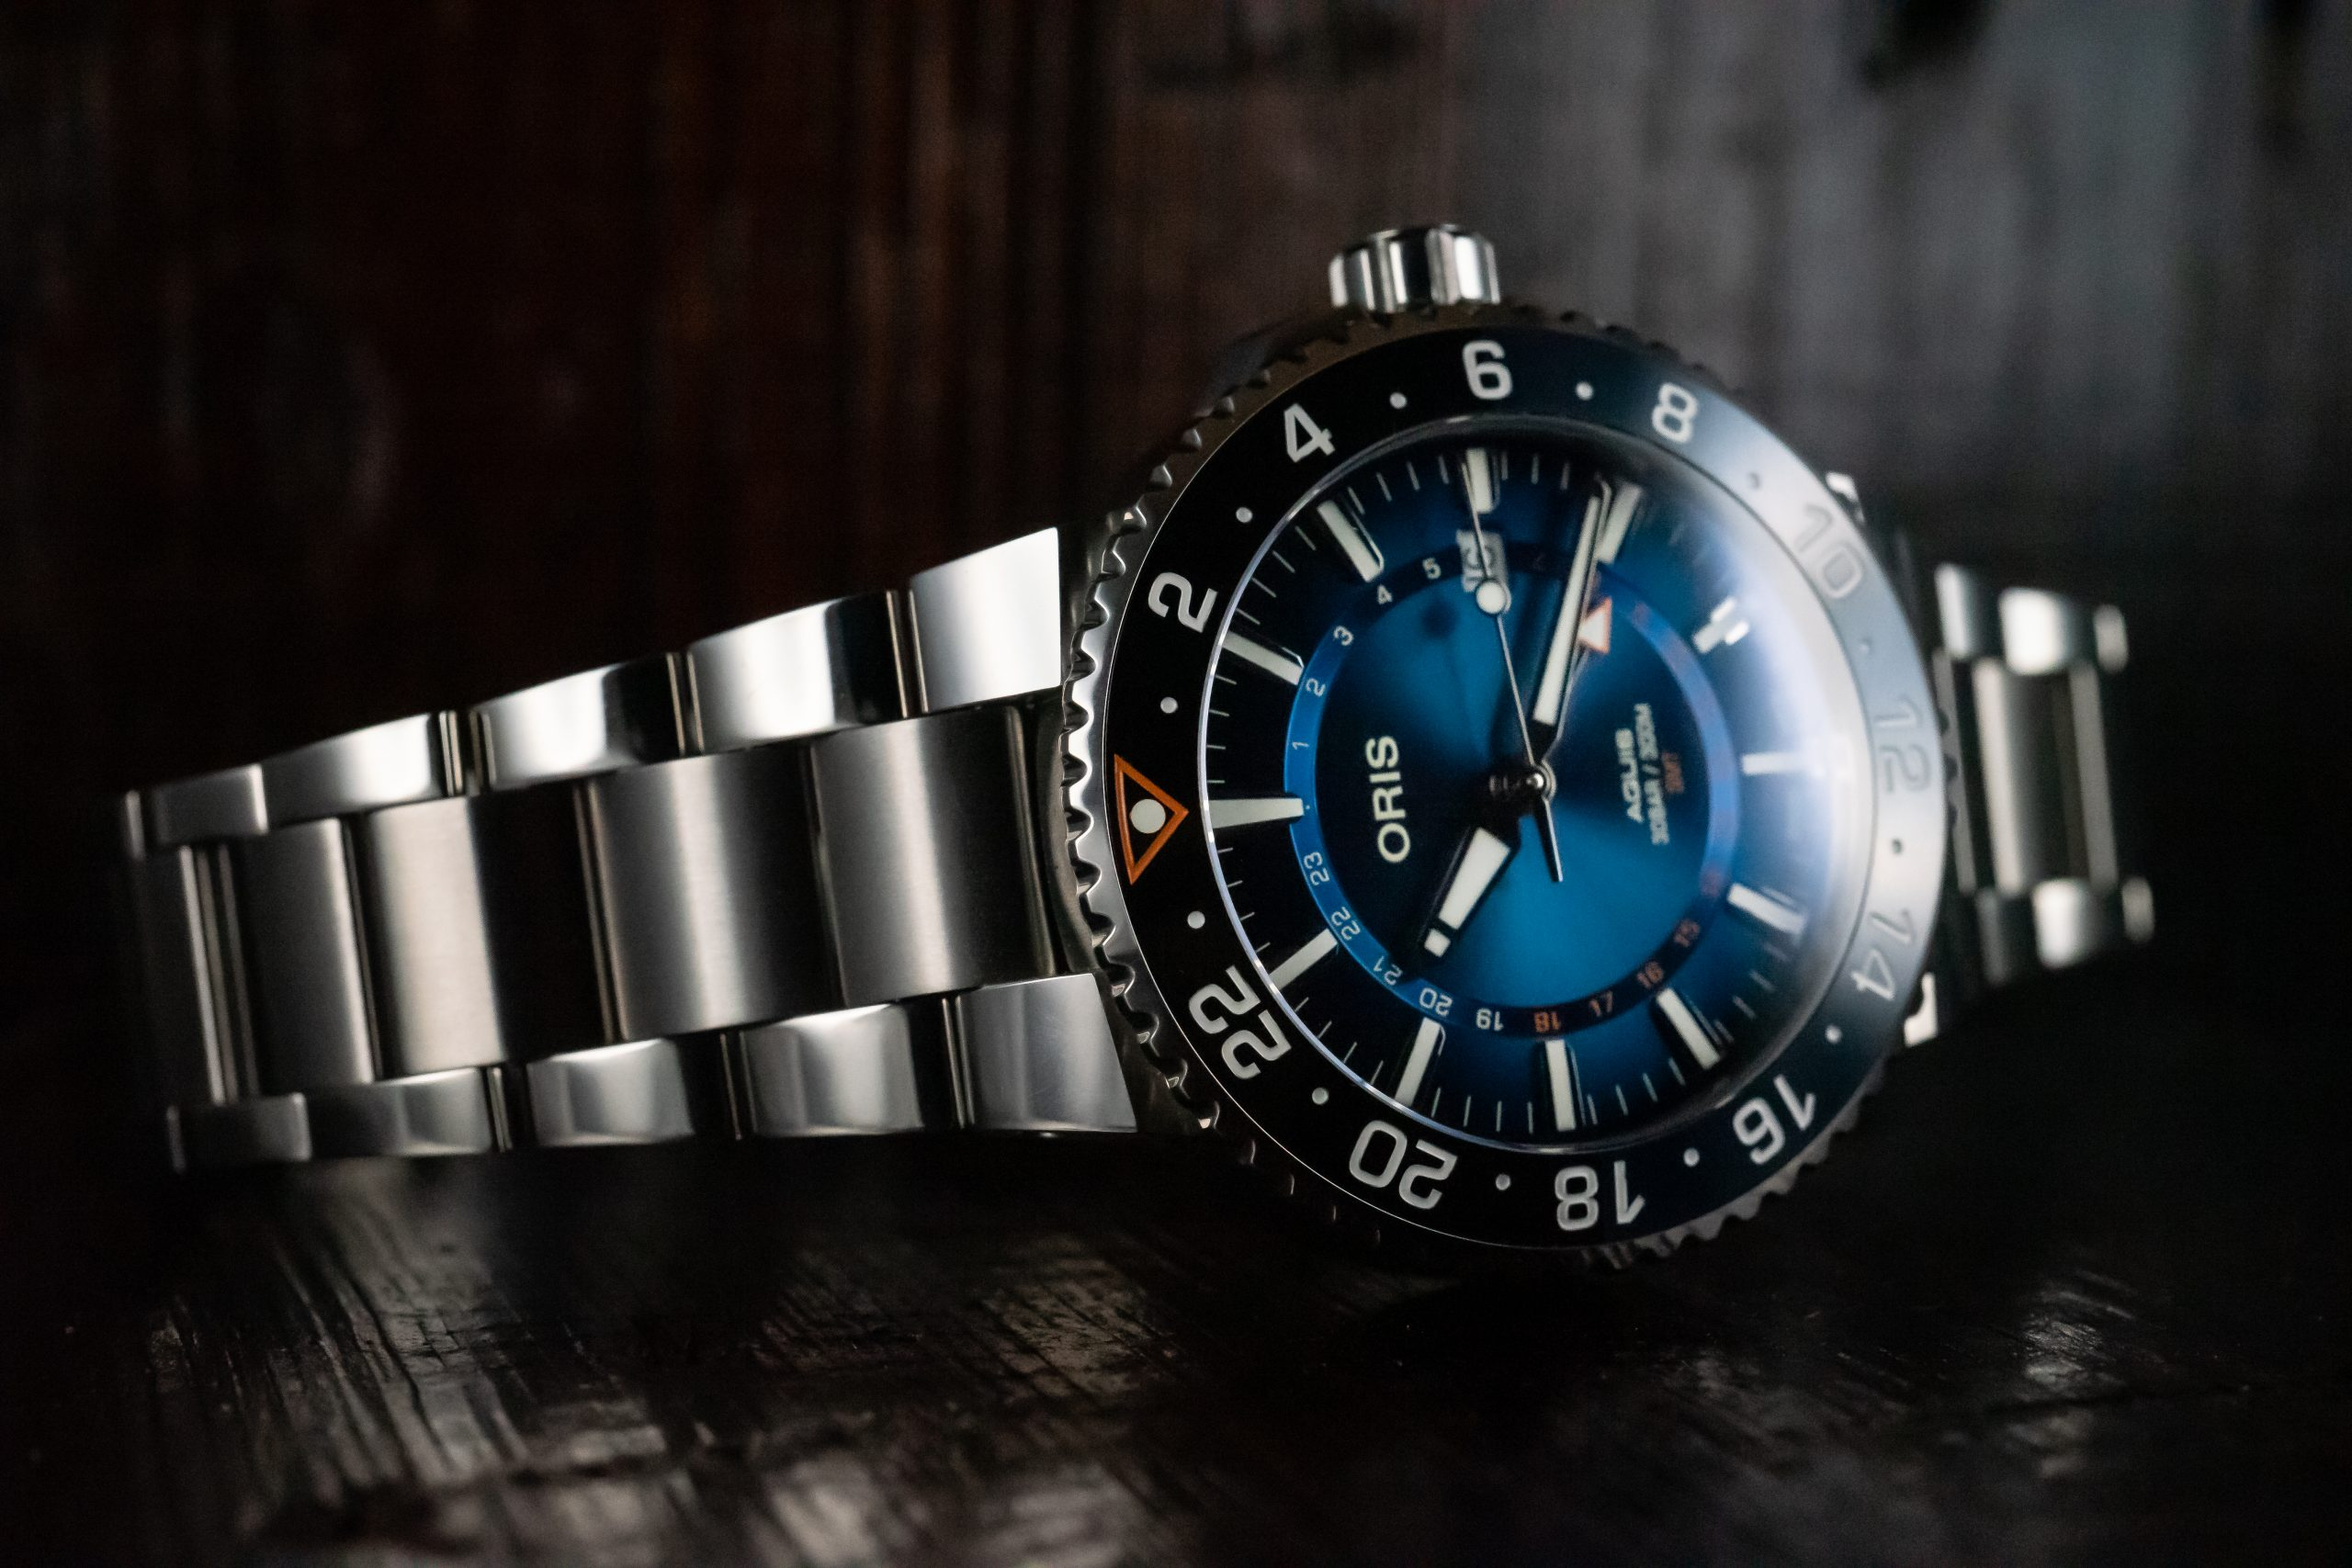 Announcing the Oris x Beyond The Dial Essay Contest Winners!